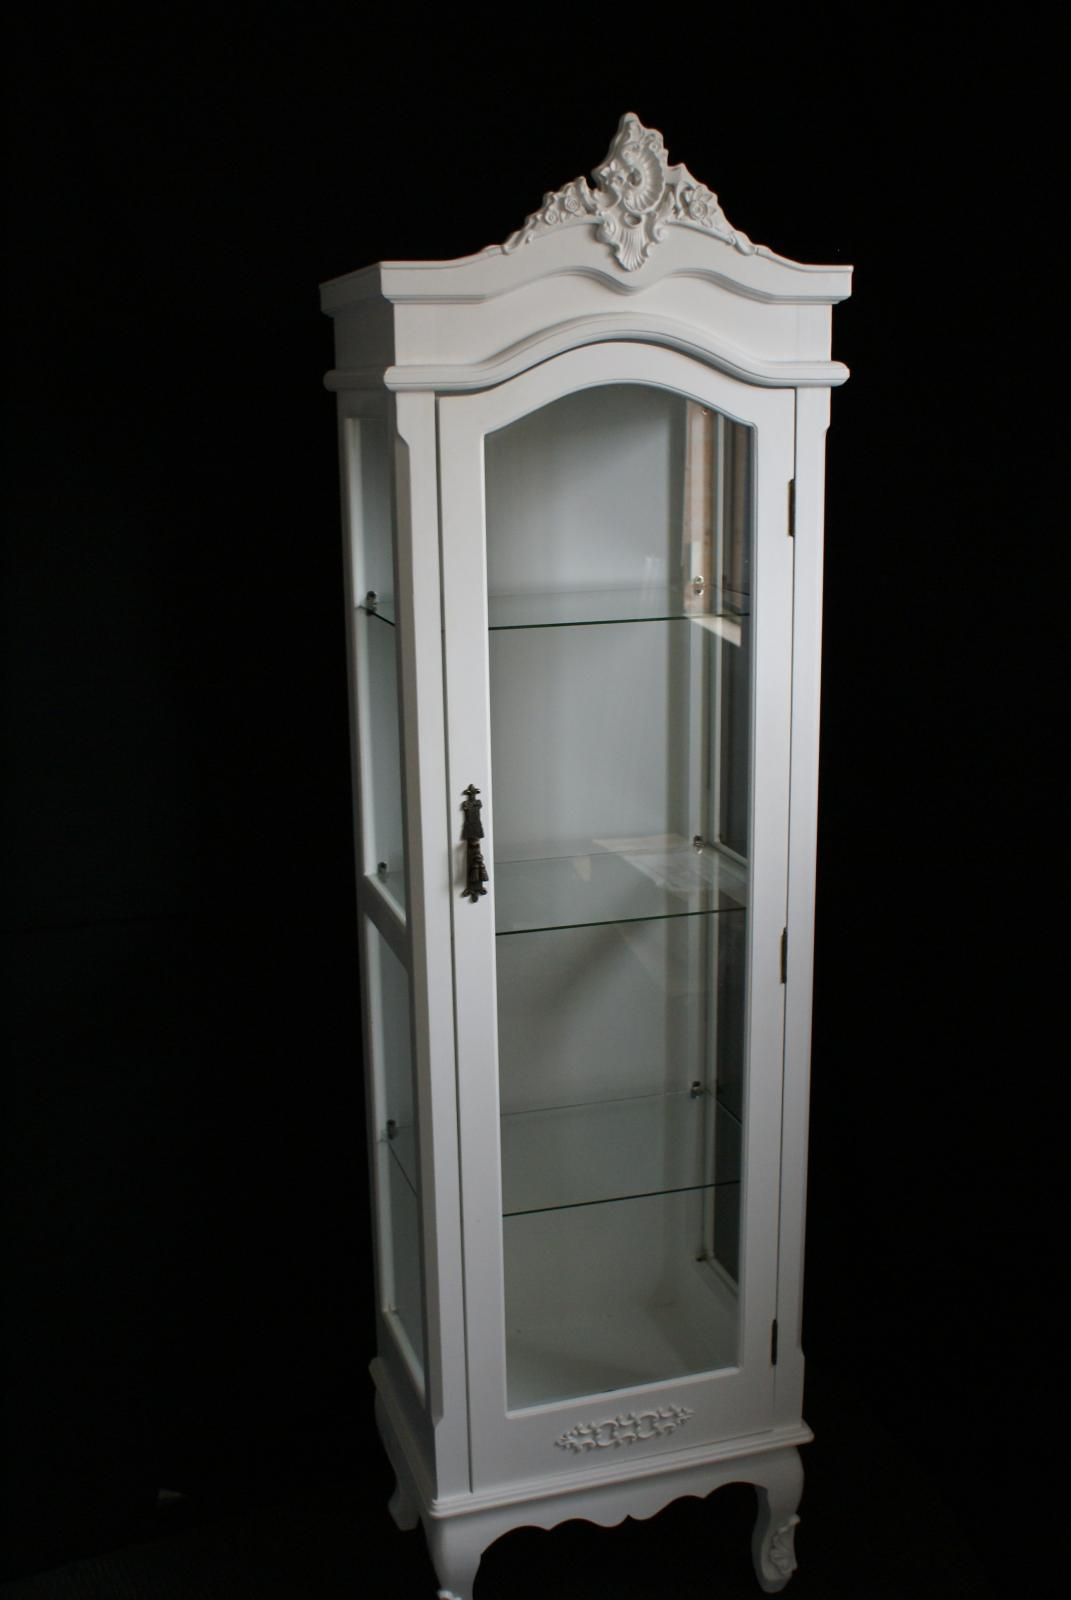 #595149 NEW FRENCH PROVINCIAL GLASS CABINET DISPLAY SHELF ARMOIRE  with 1071x1600 px of Most Effective Glass Display Cabinets Qld 16001071 wallpaper @ avoidforclosure.info